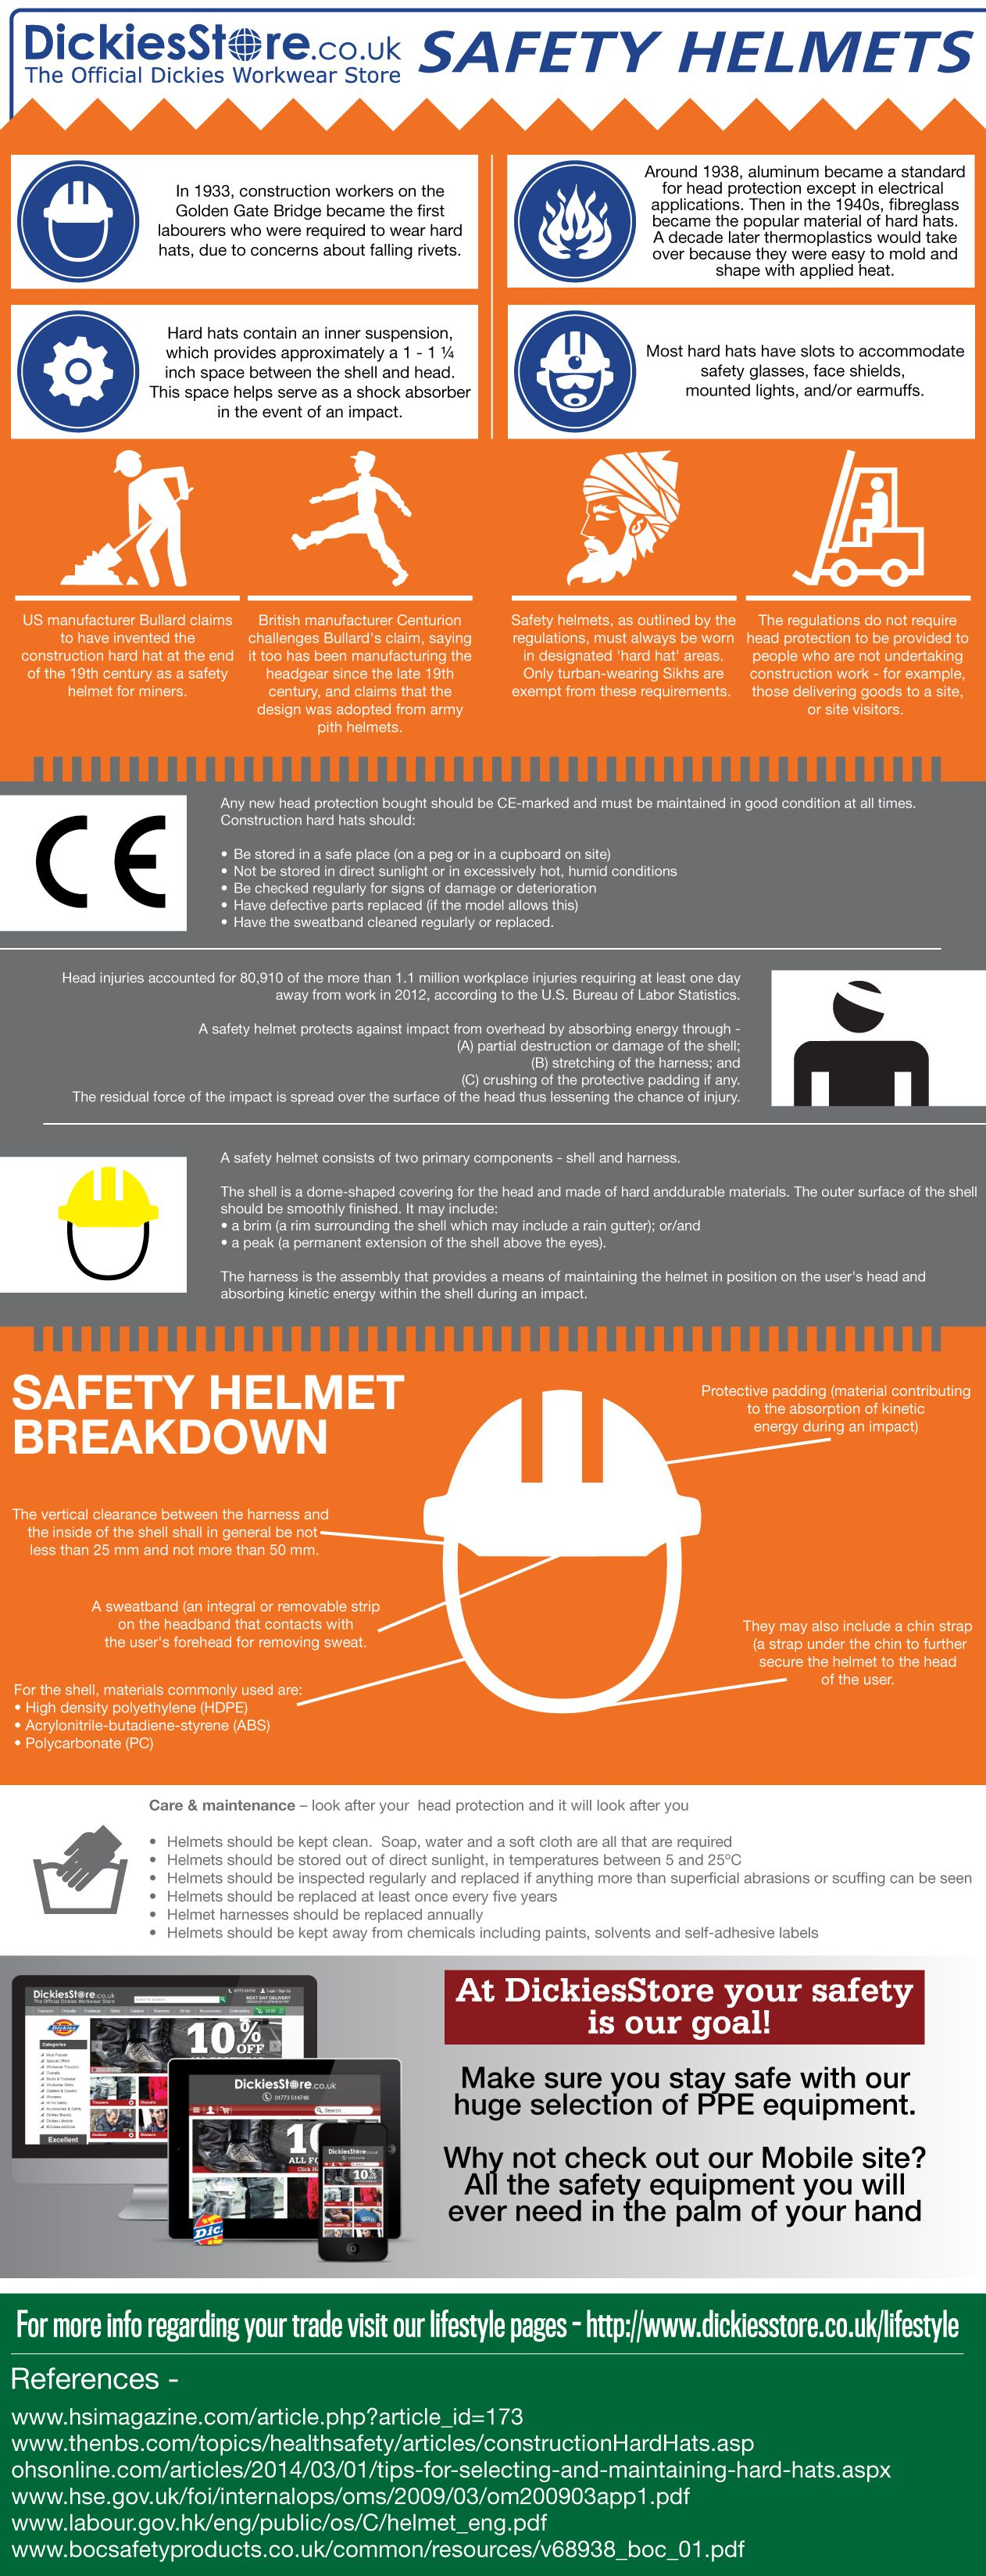 Take a look at our infographic on safety helmets, an